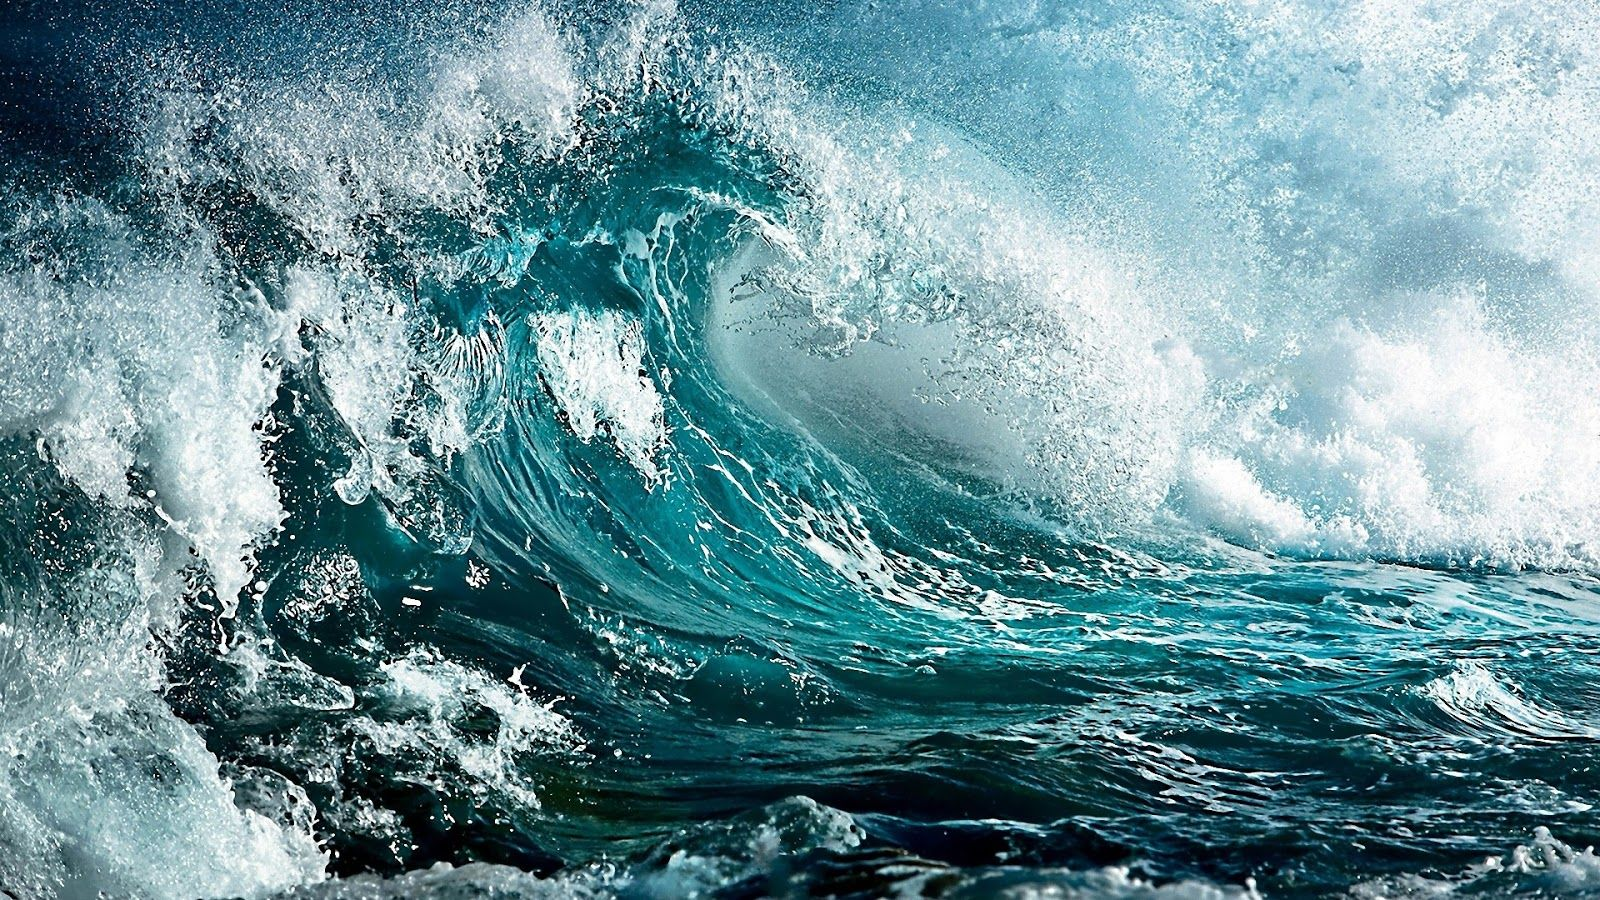 Colour Depth And Tempest Arising Ocean Waves Sea And Ocean Waves Wallpaper